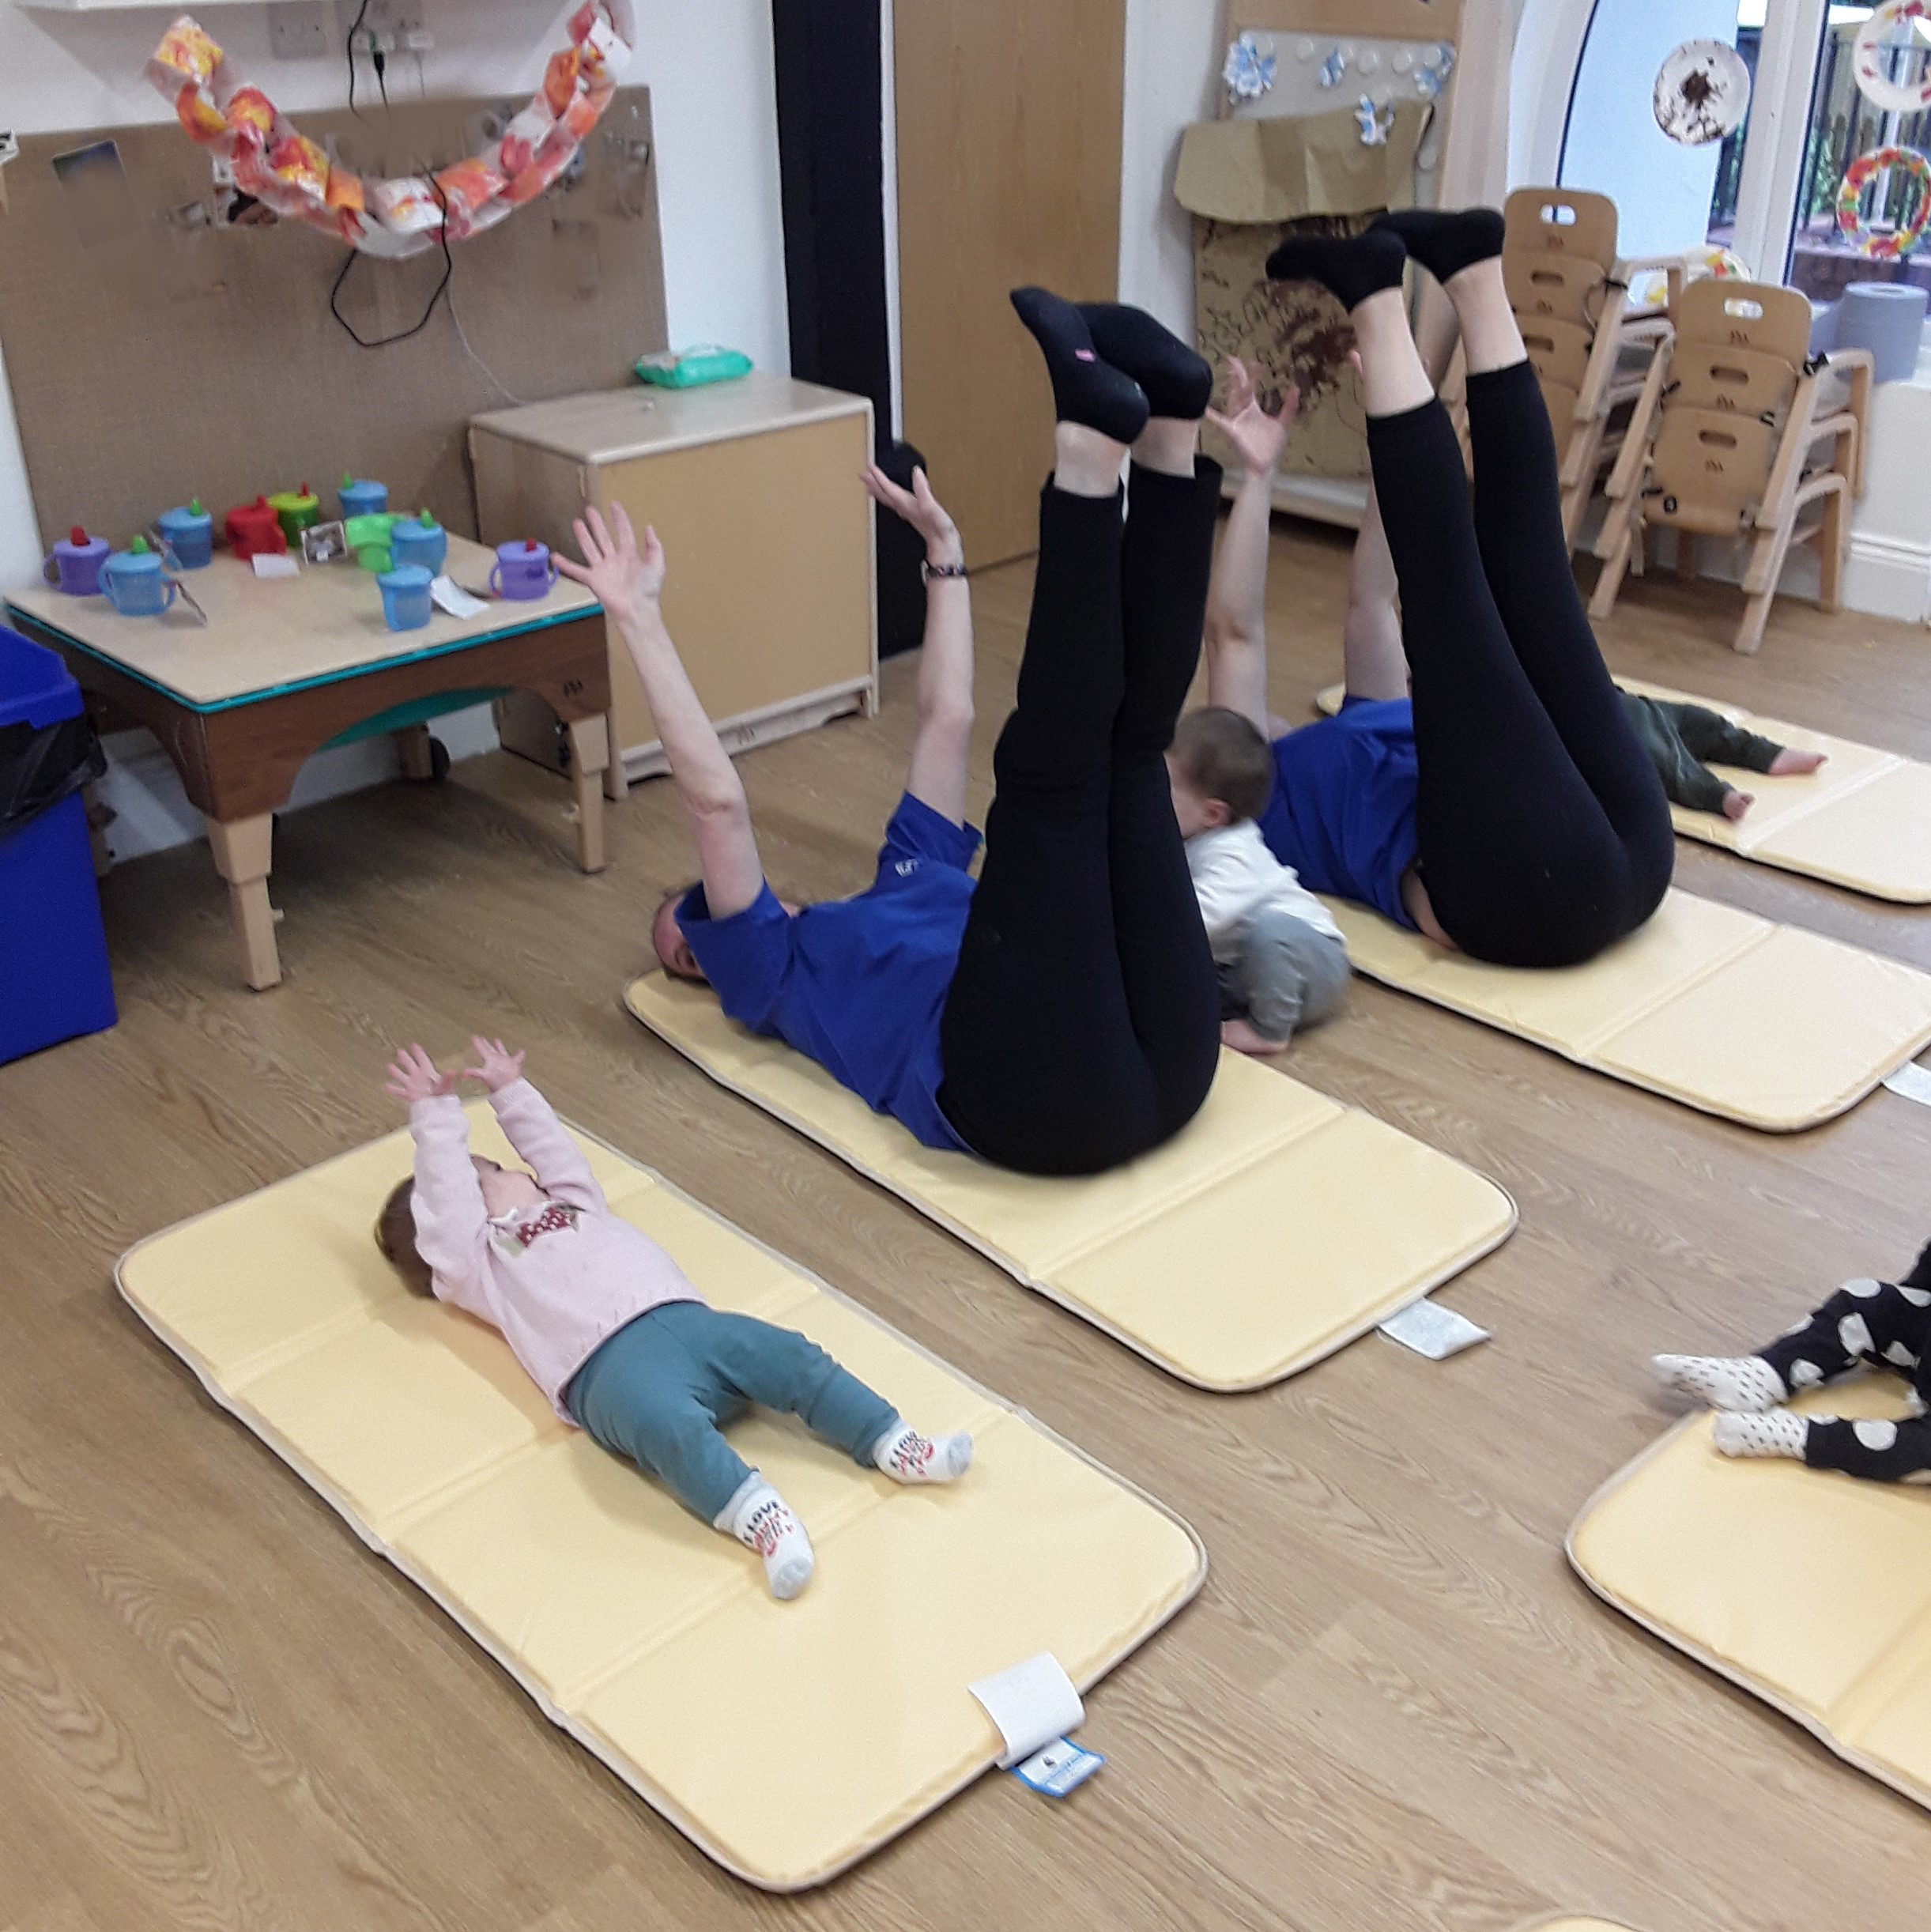 The babies have been enjoying doing yoga - baby room style!